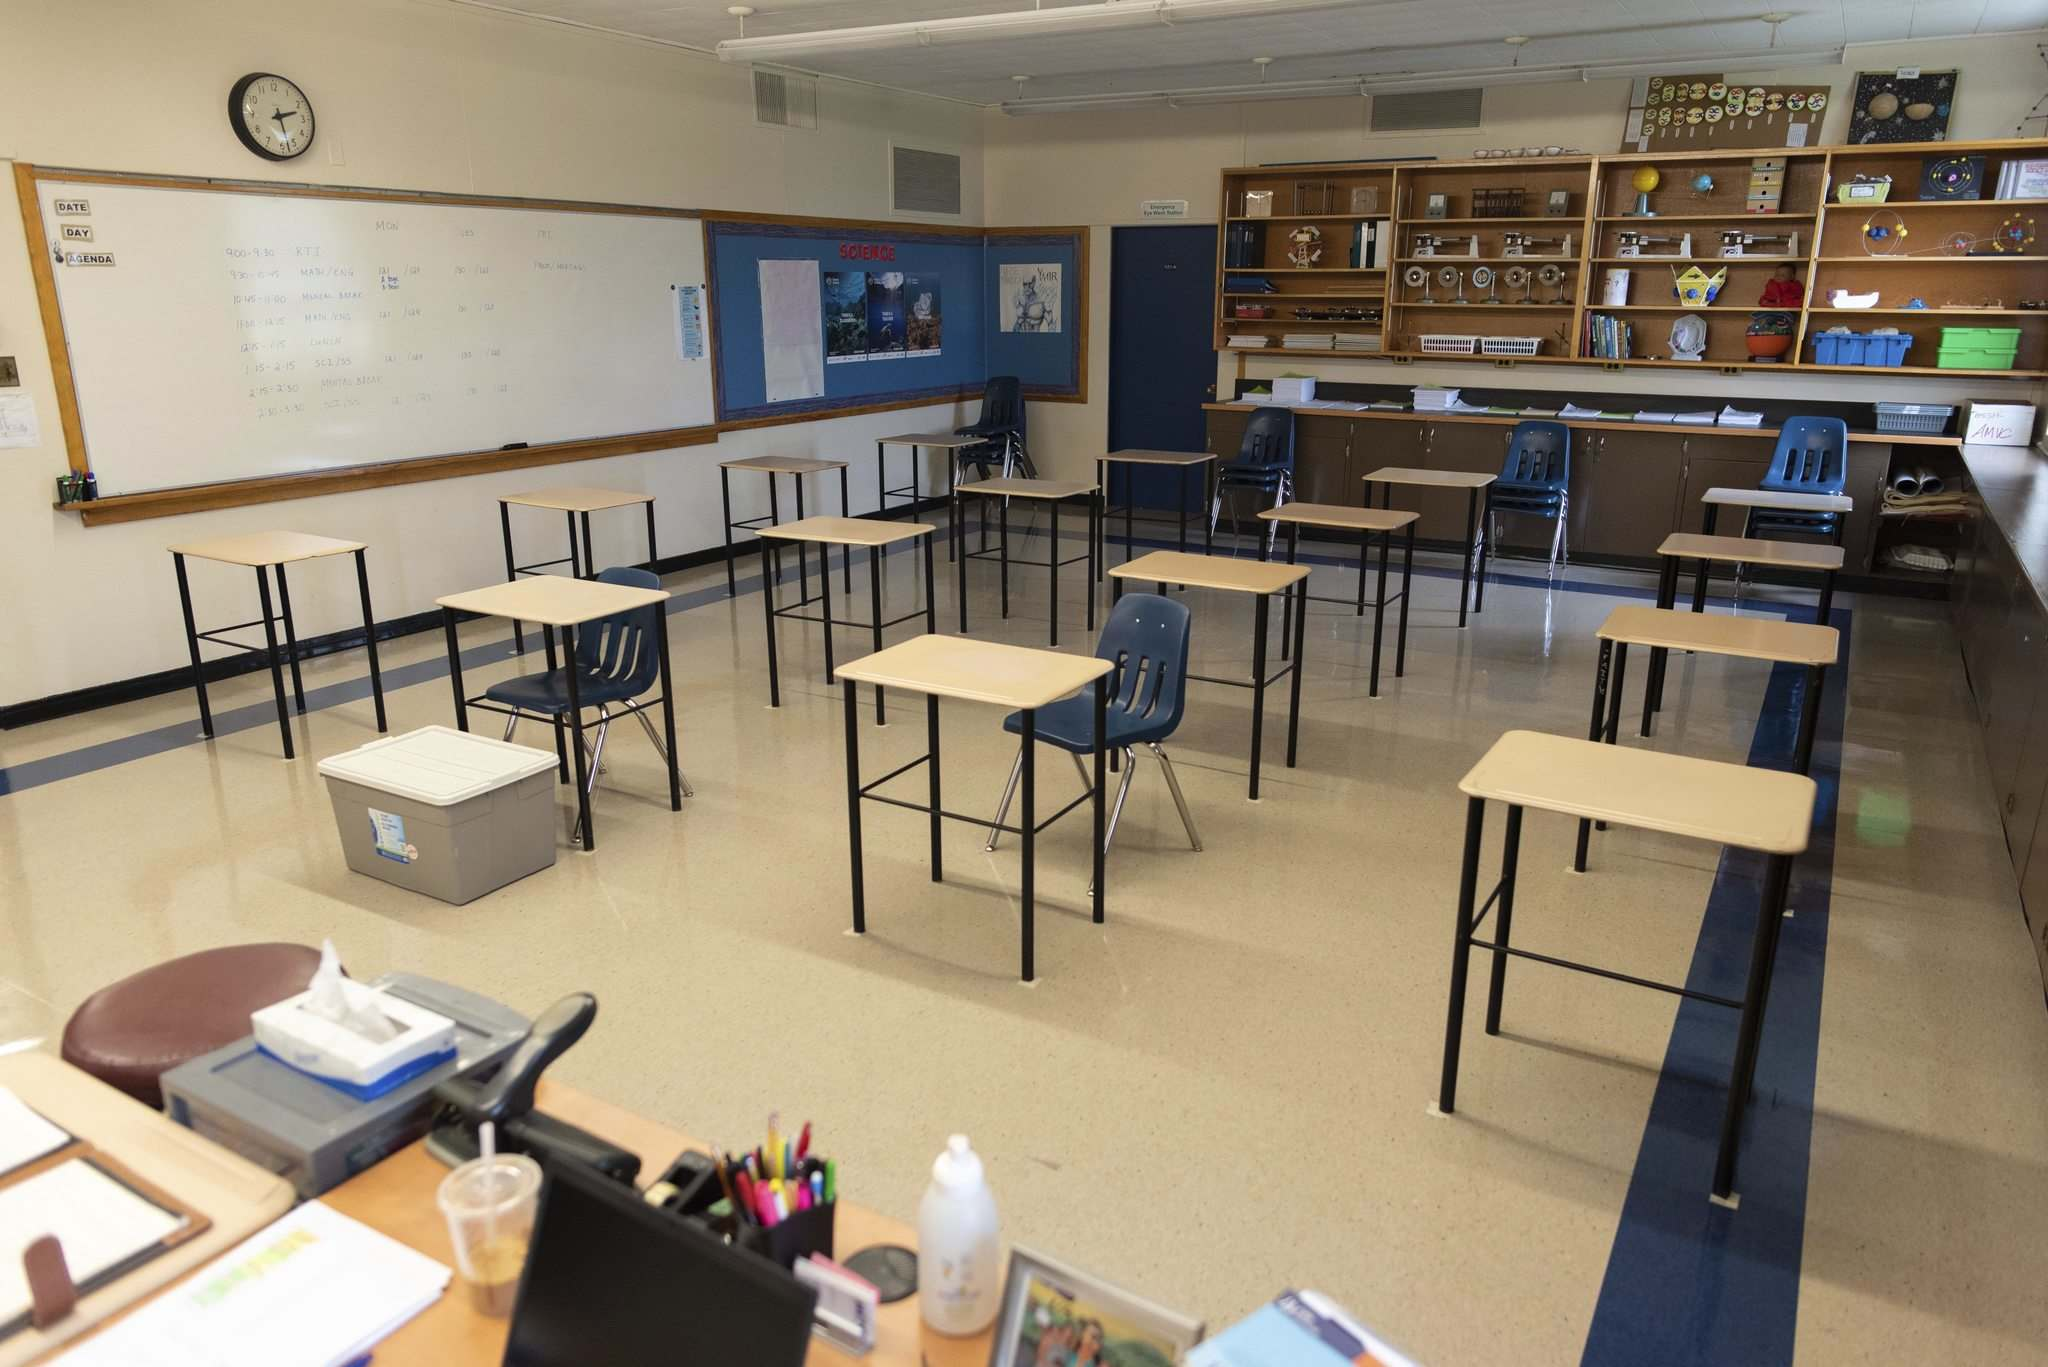 JESSE BOILY / WINNIPEG FREE PRESS FILES</p><p>Classrooms are empty again as students move to remote learning.</p>